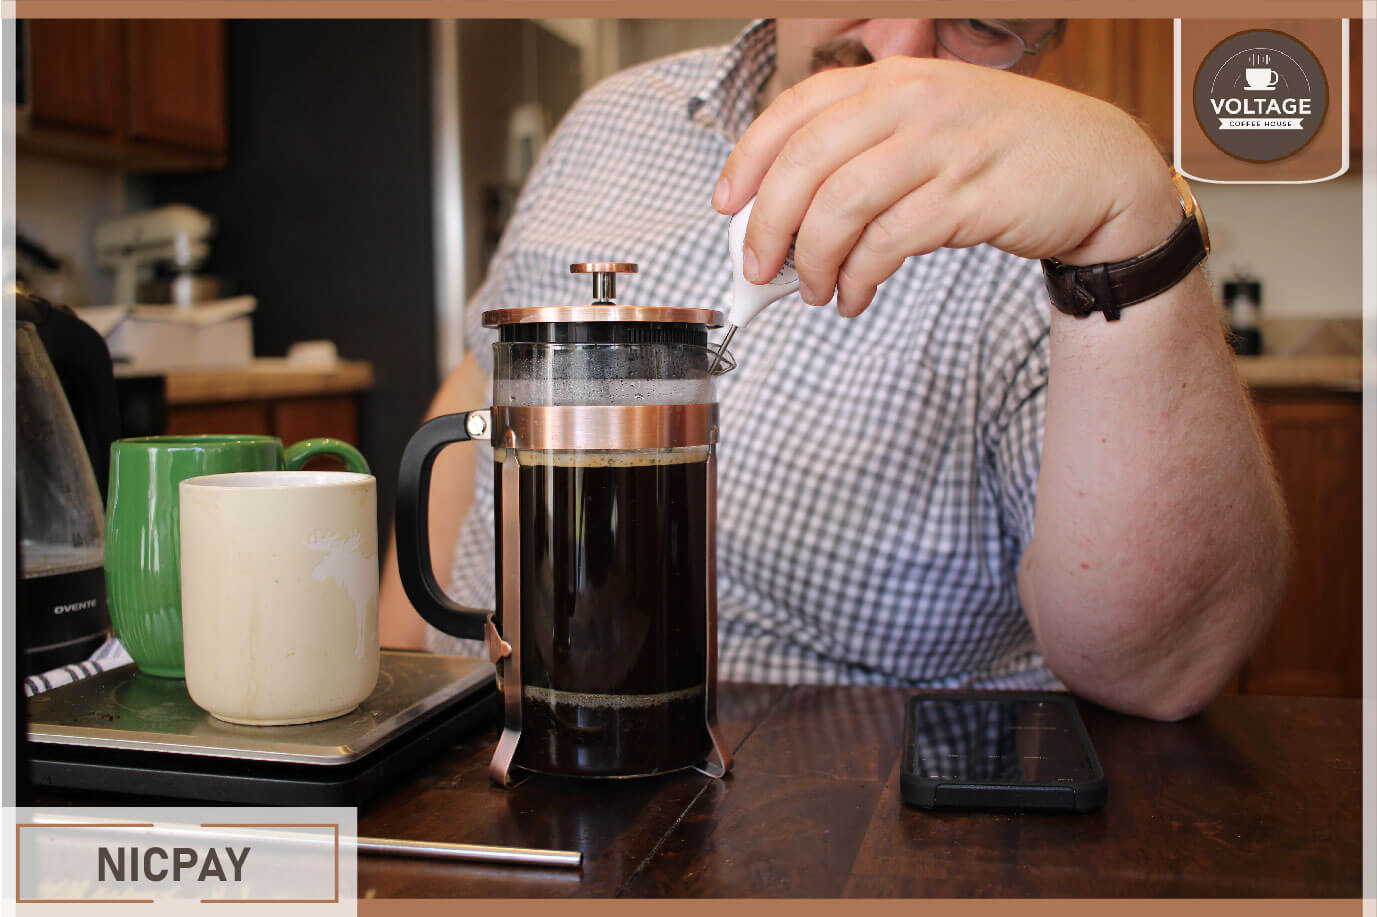 NicPay french press maker review